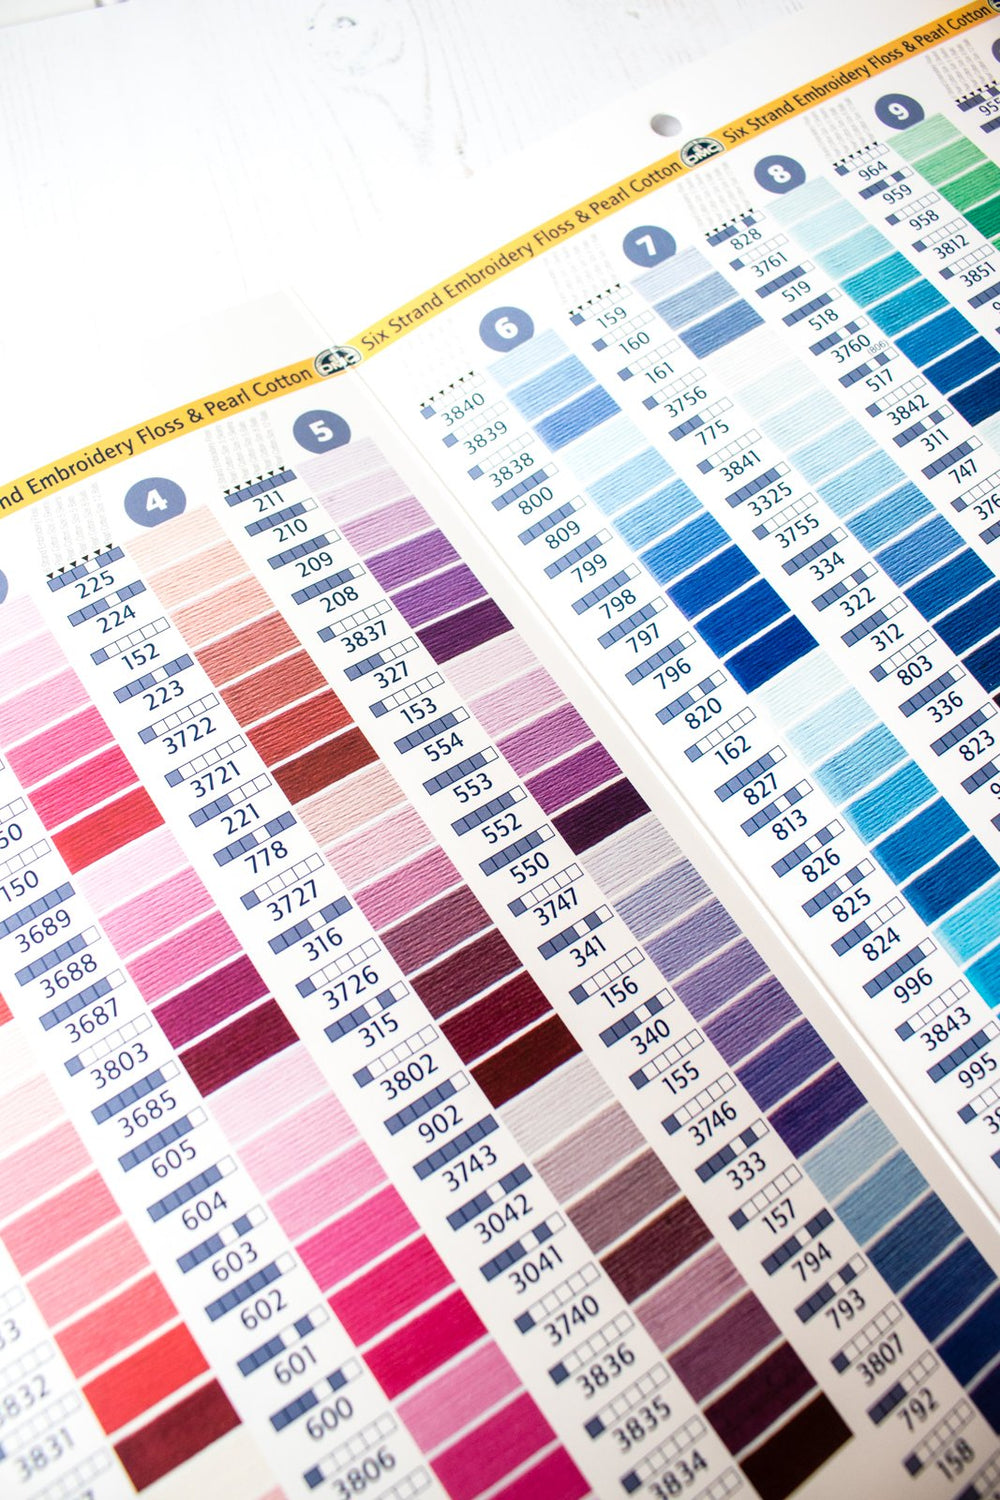 DMC Embroidery and Specialty Thread Color Card - Printed Version